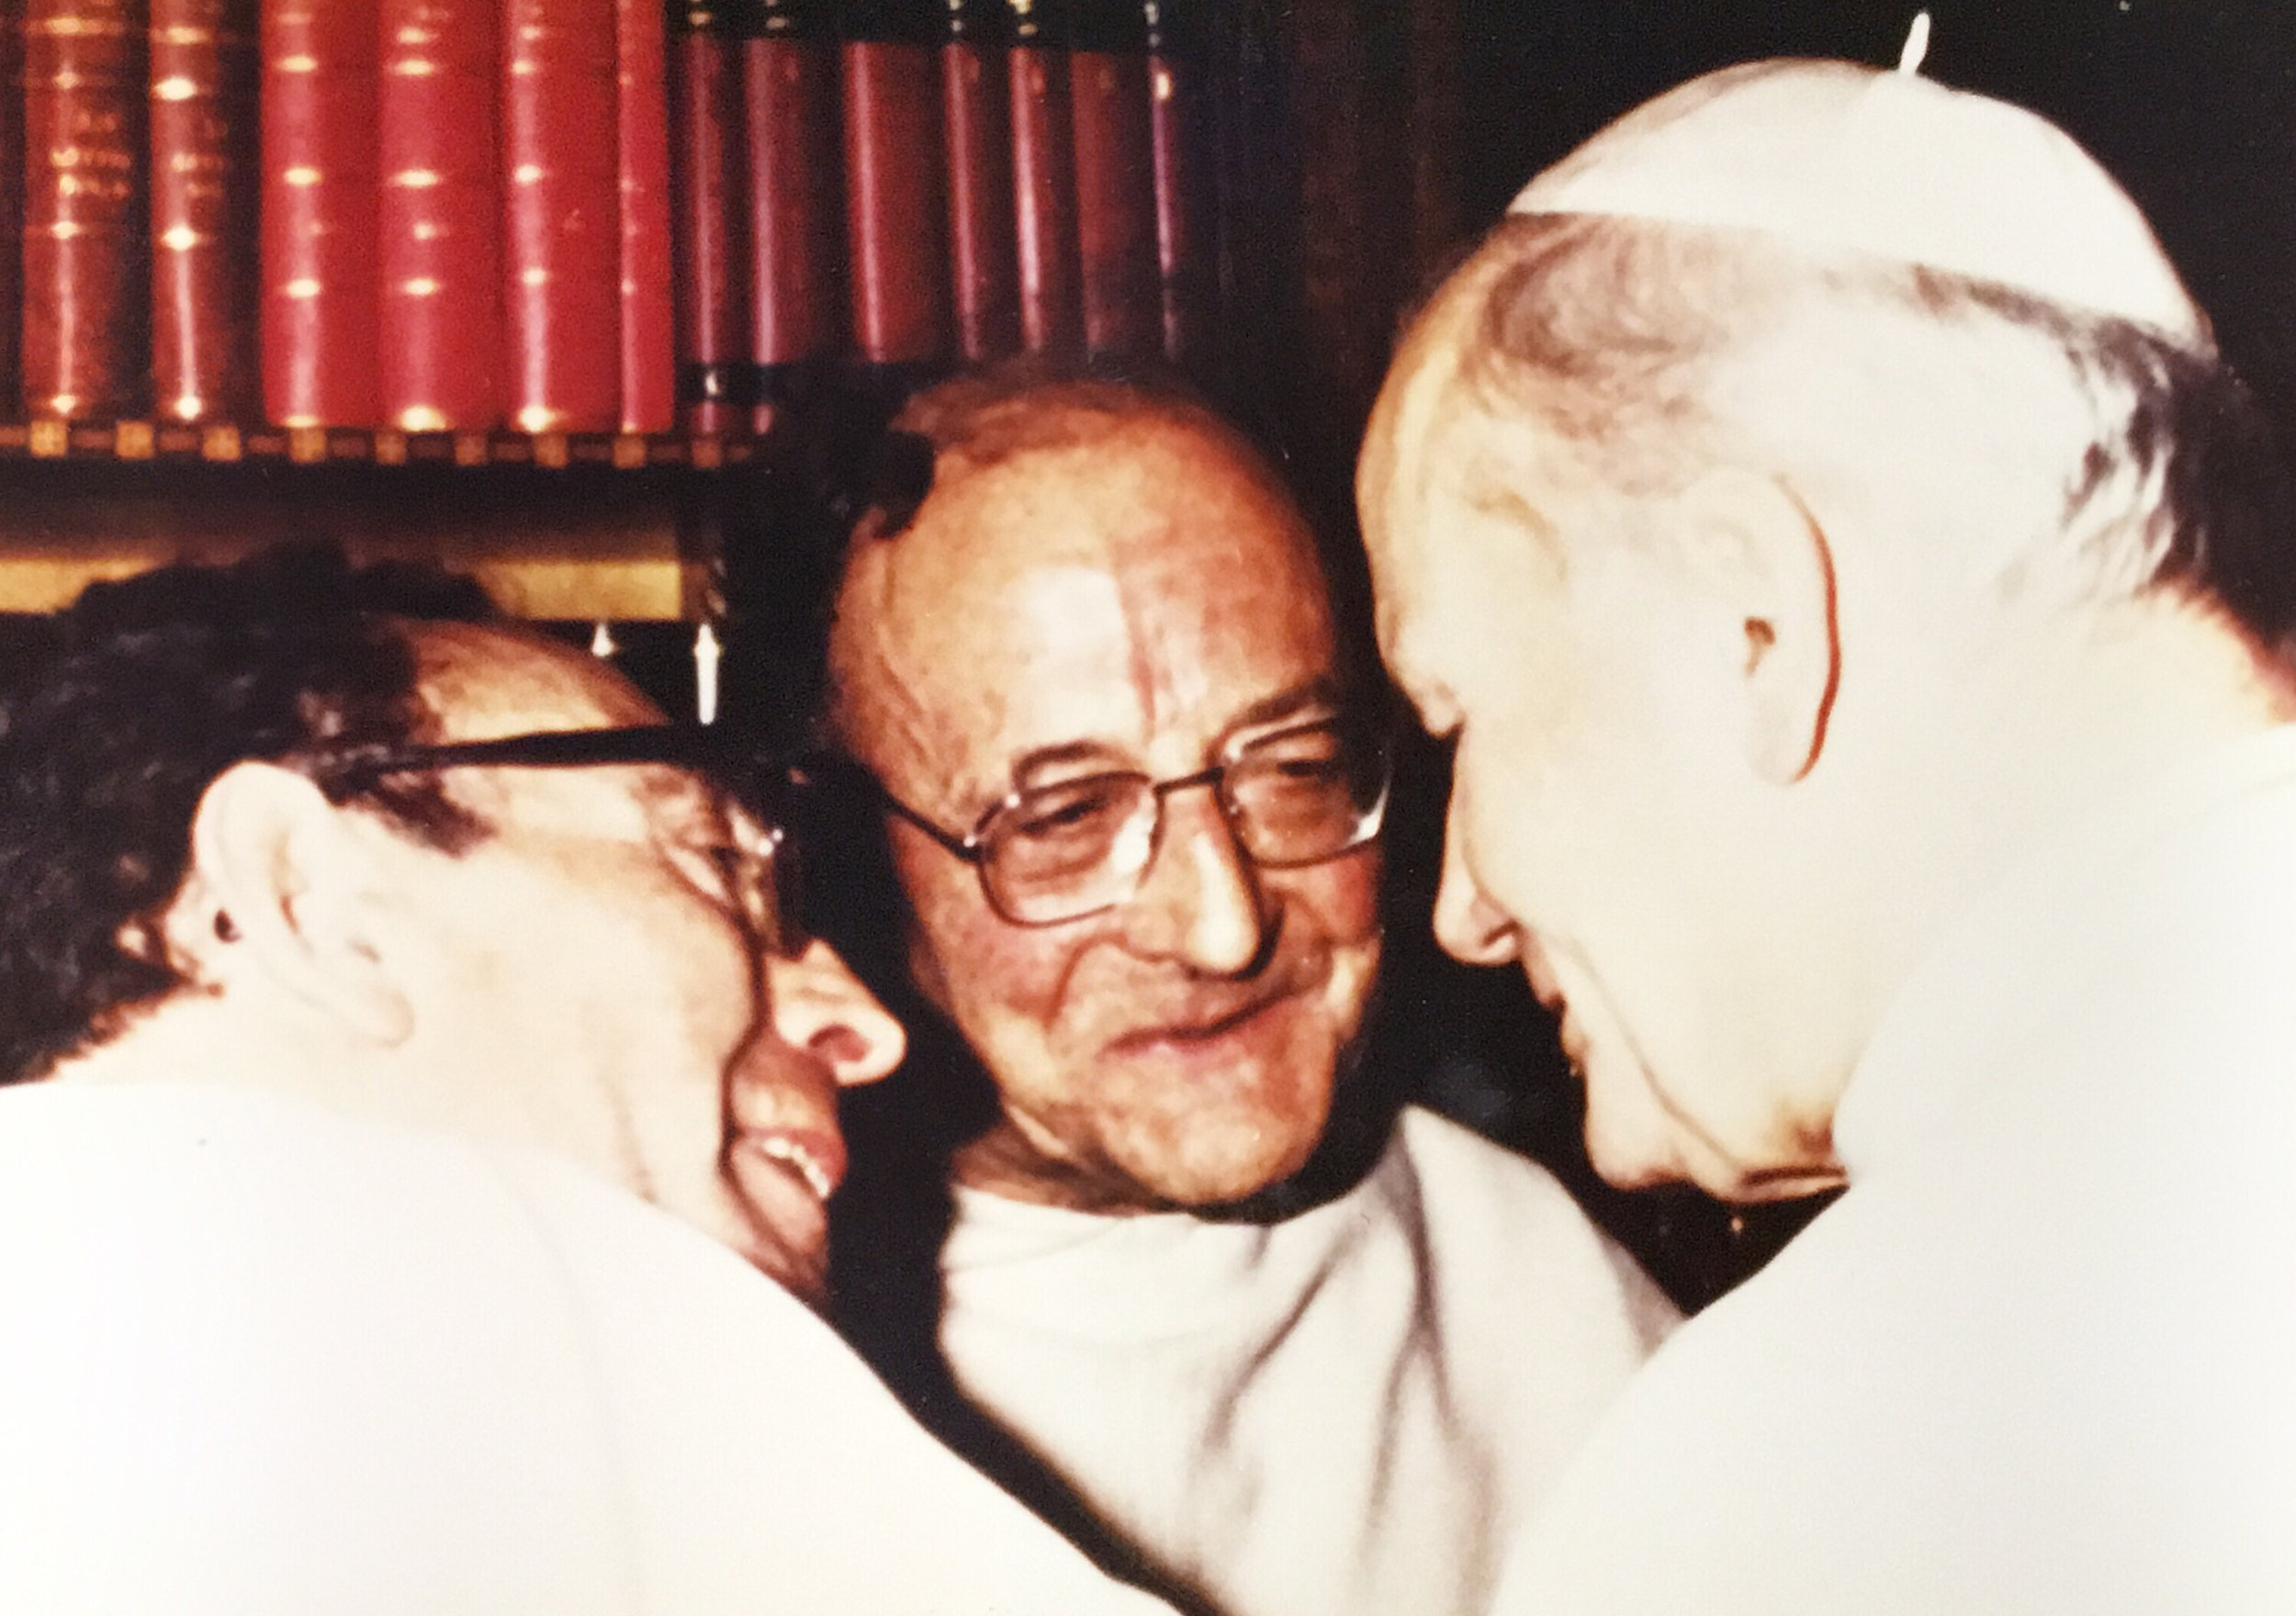 Pere Thomas, his brother Pere Marie Dominique Philipe, and St. John Paul II